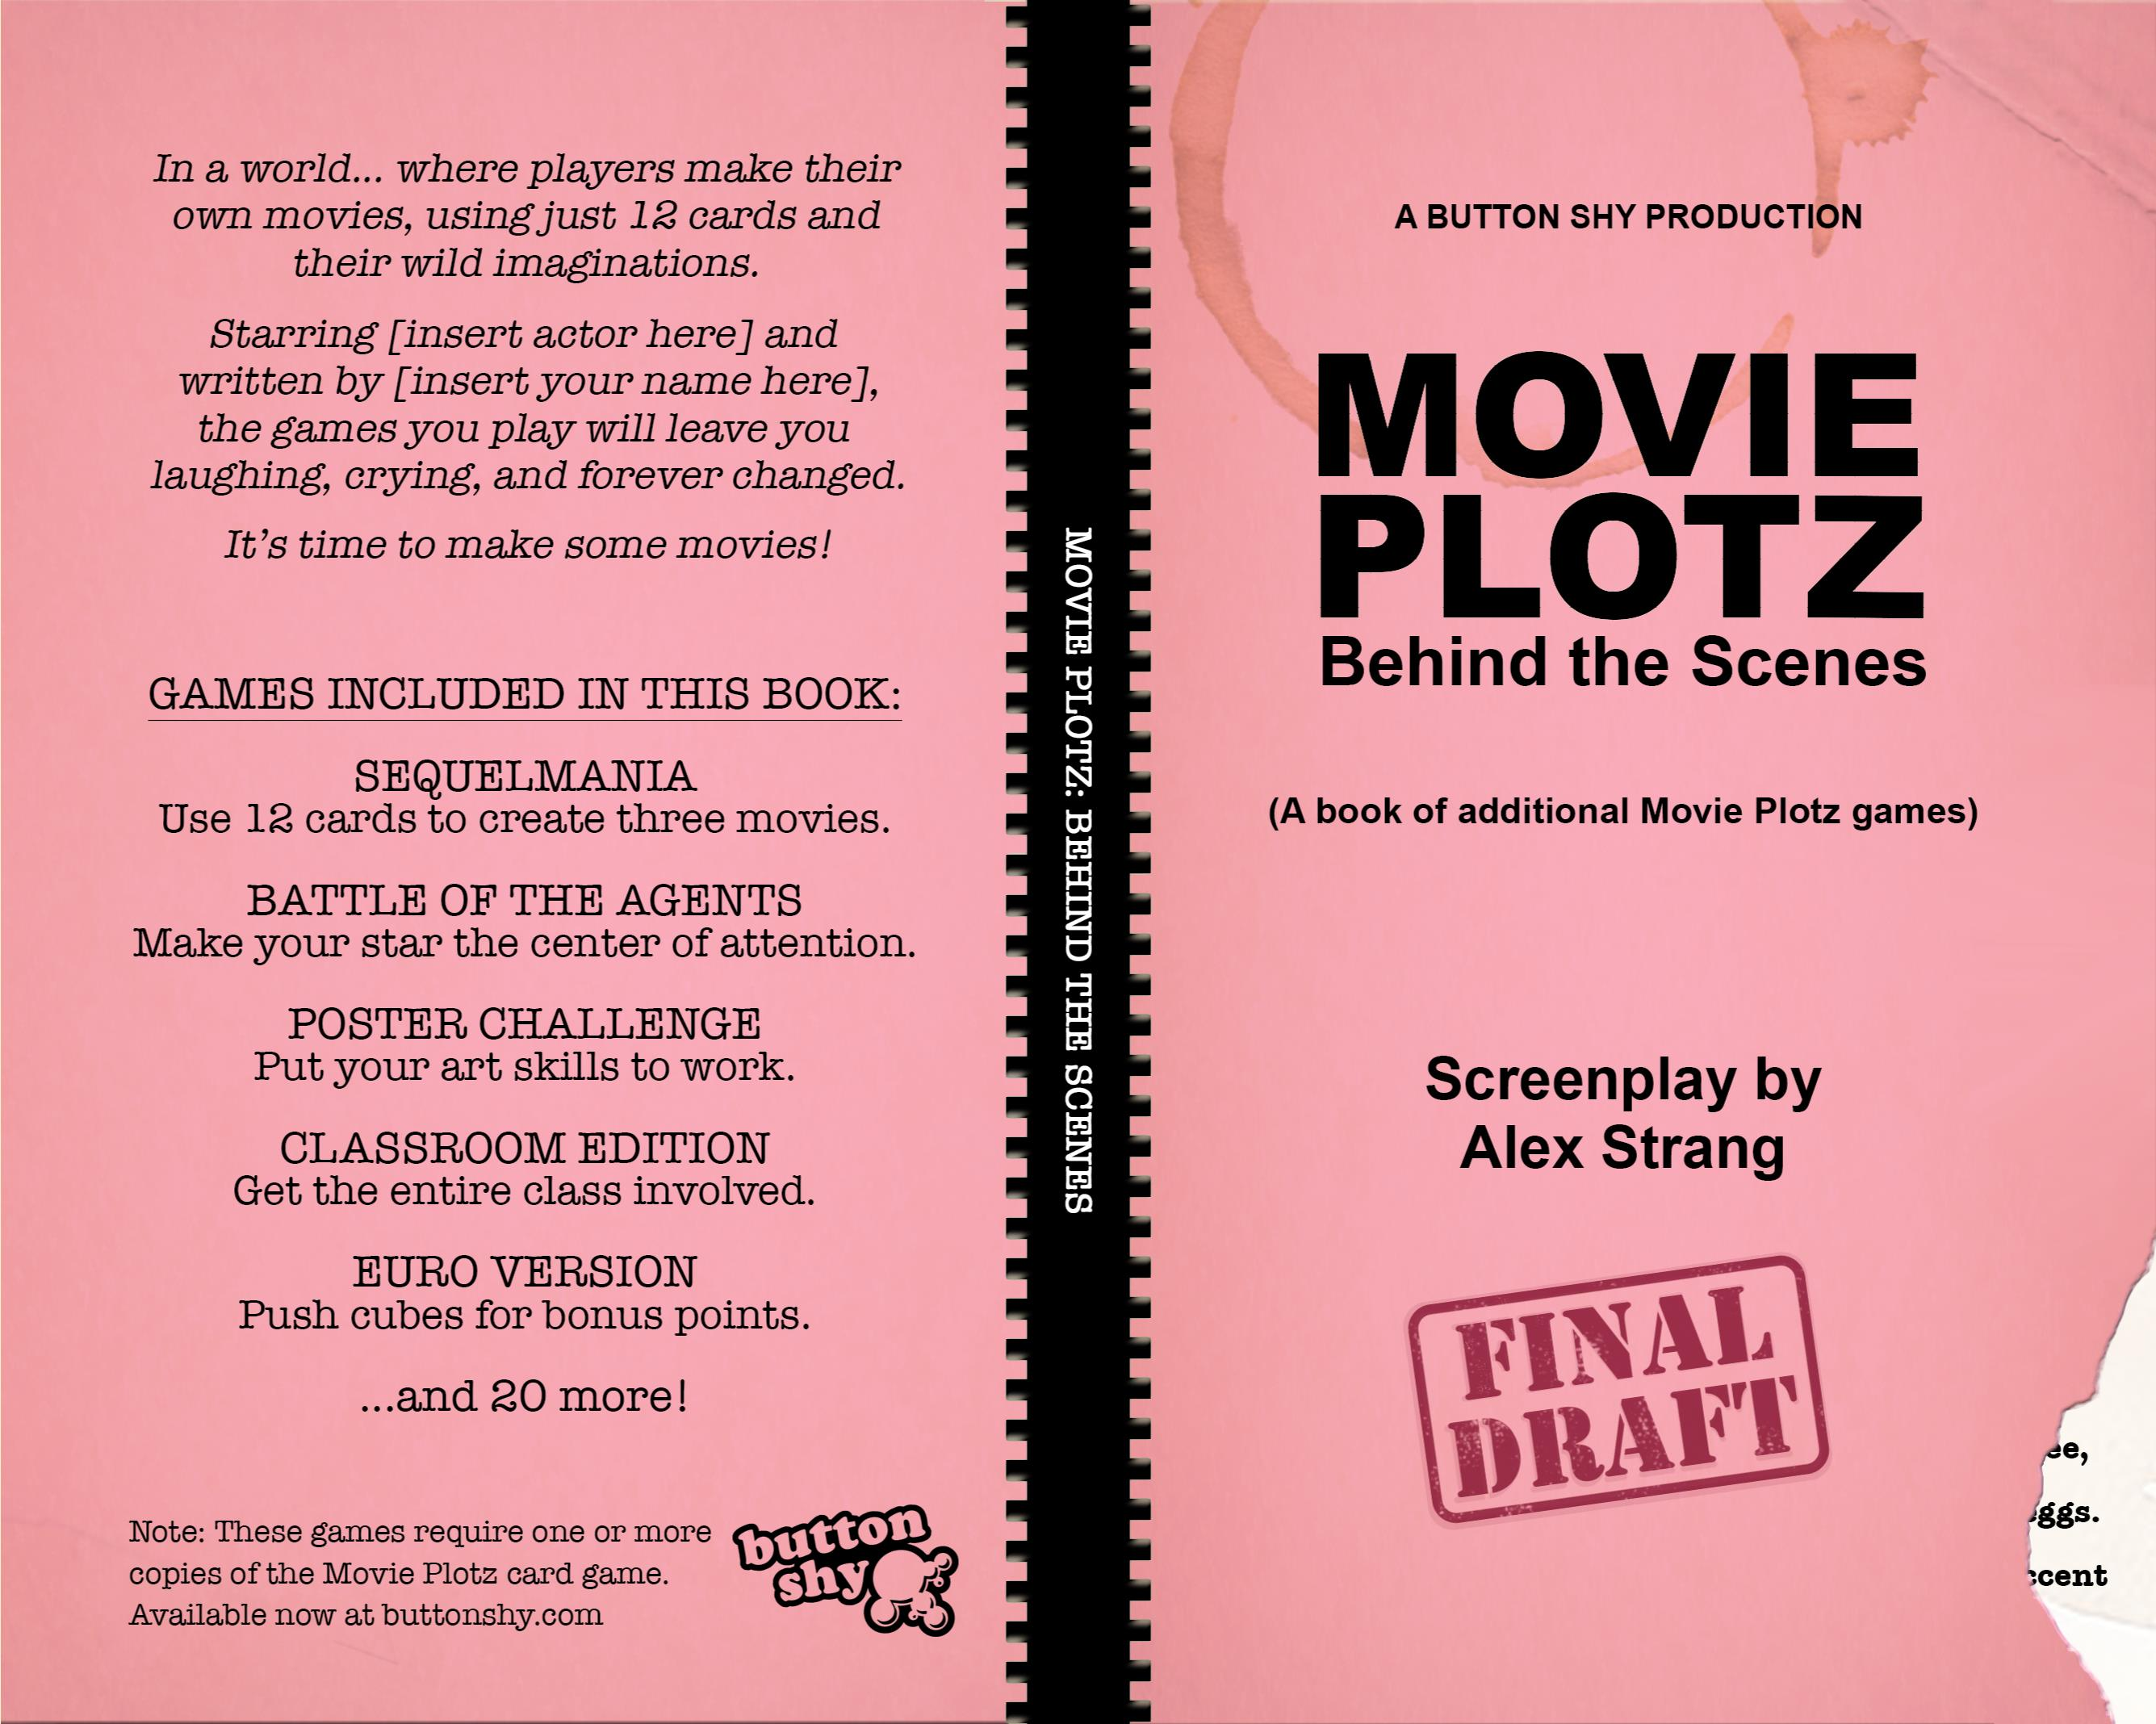 Movie Plotz: Behind The Scenes cover image